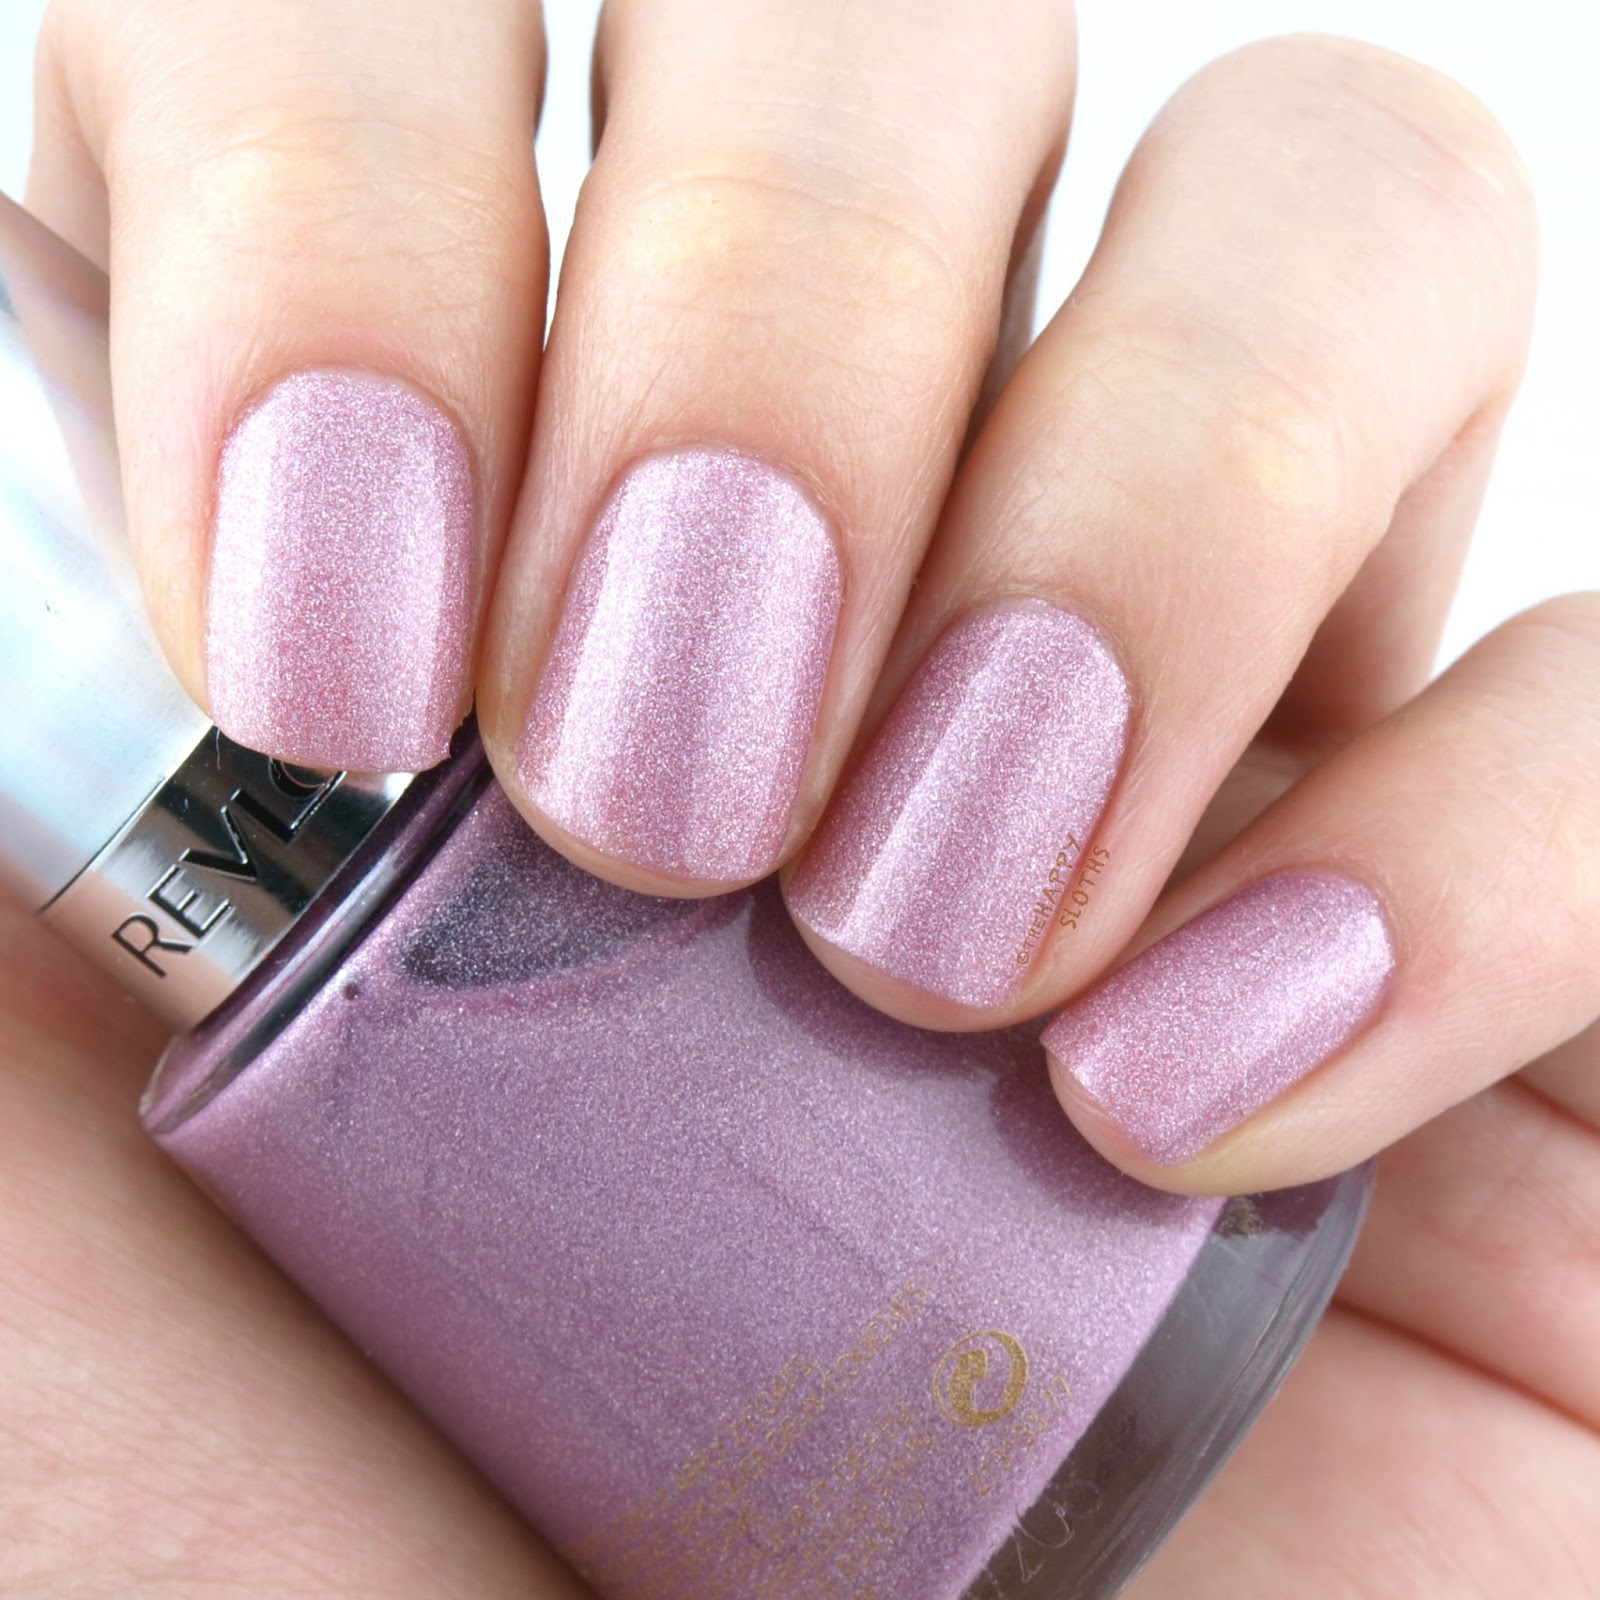 REVLON 2016 NAIL POLISH SWATCHES AND REVIEW - Beautygeeks